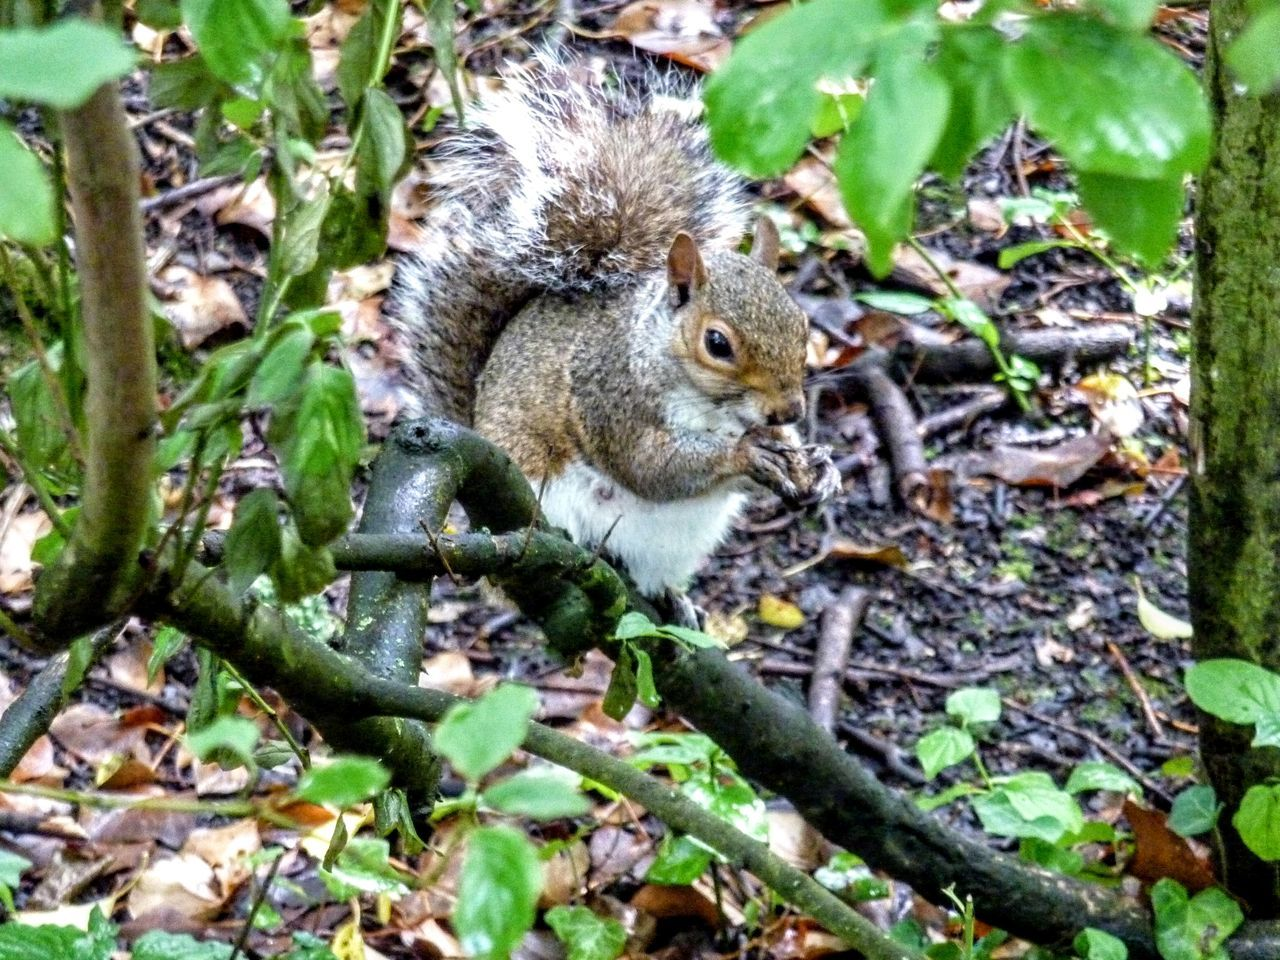 one animal, nature, squirrel, animals in the wild, outdoors, animal themes, day, no people, eating, animal wildlife, leaf, forest, mammal, plant, growth, close-up, beauty in nature